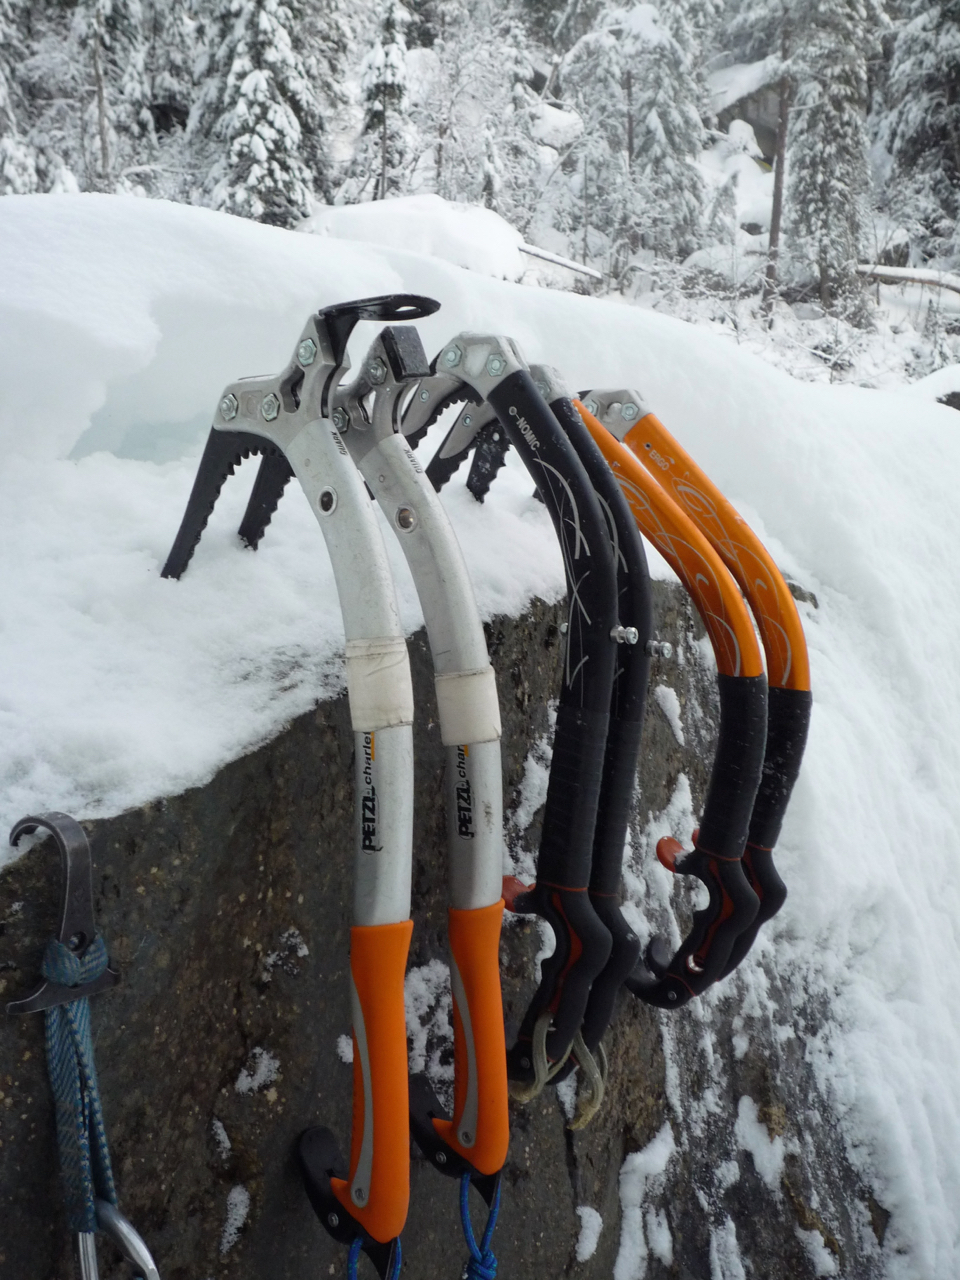 What ice axe?